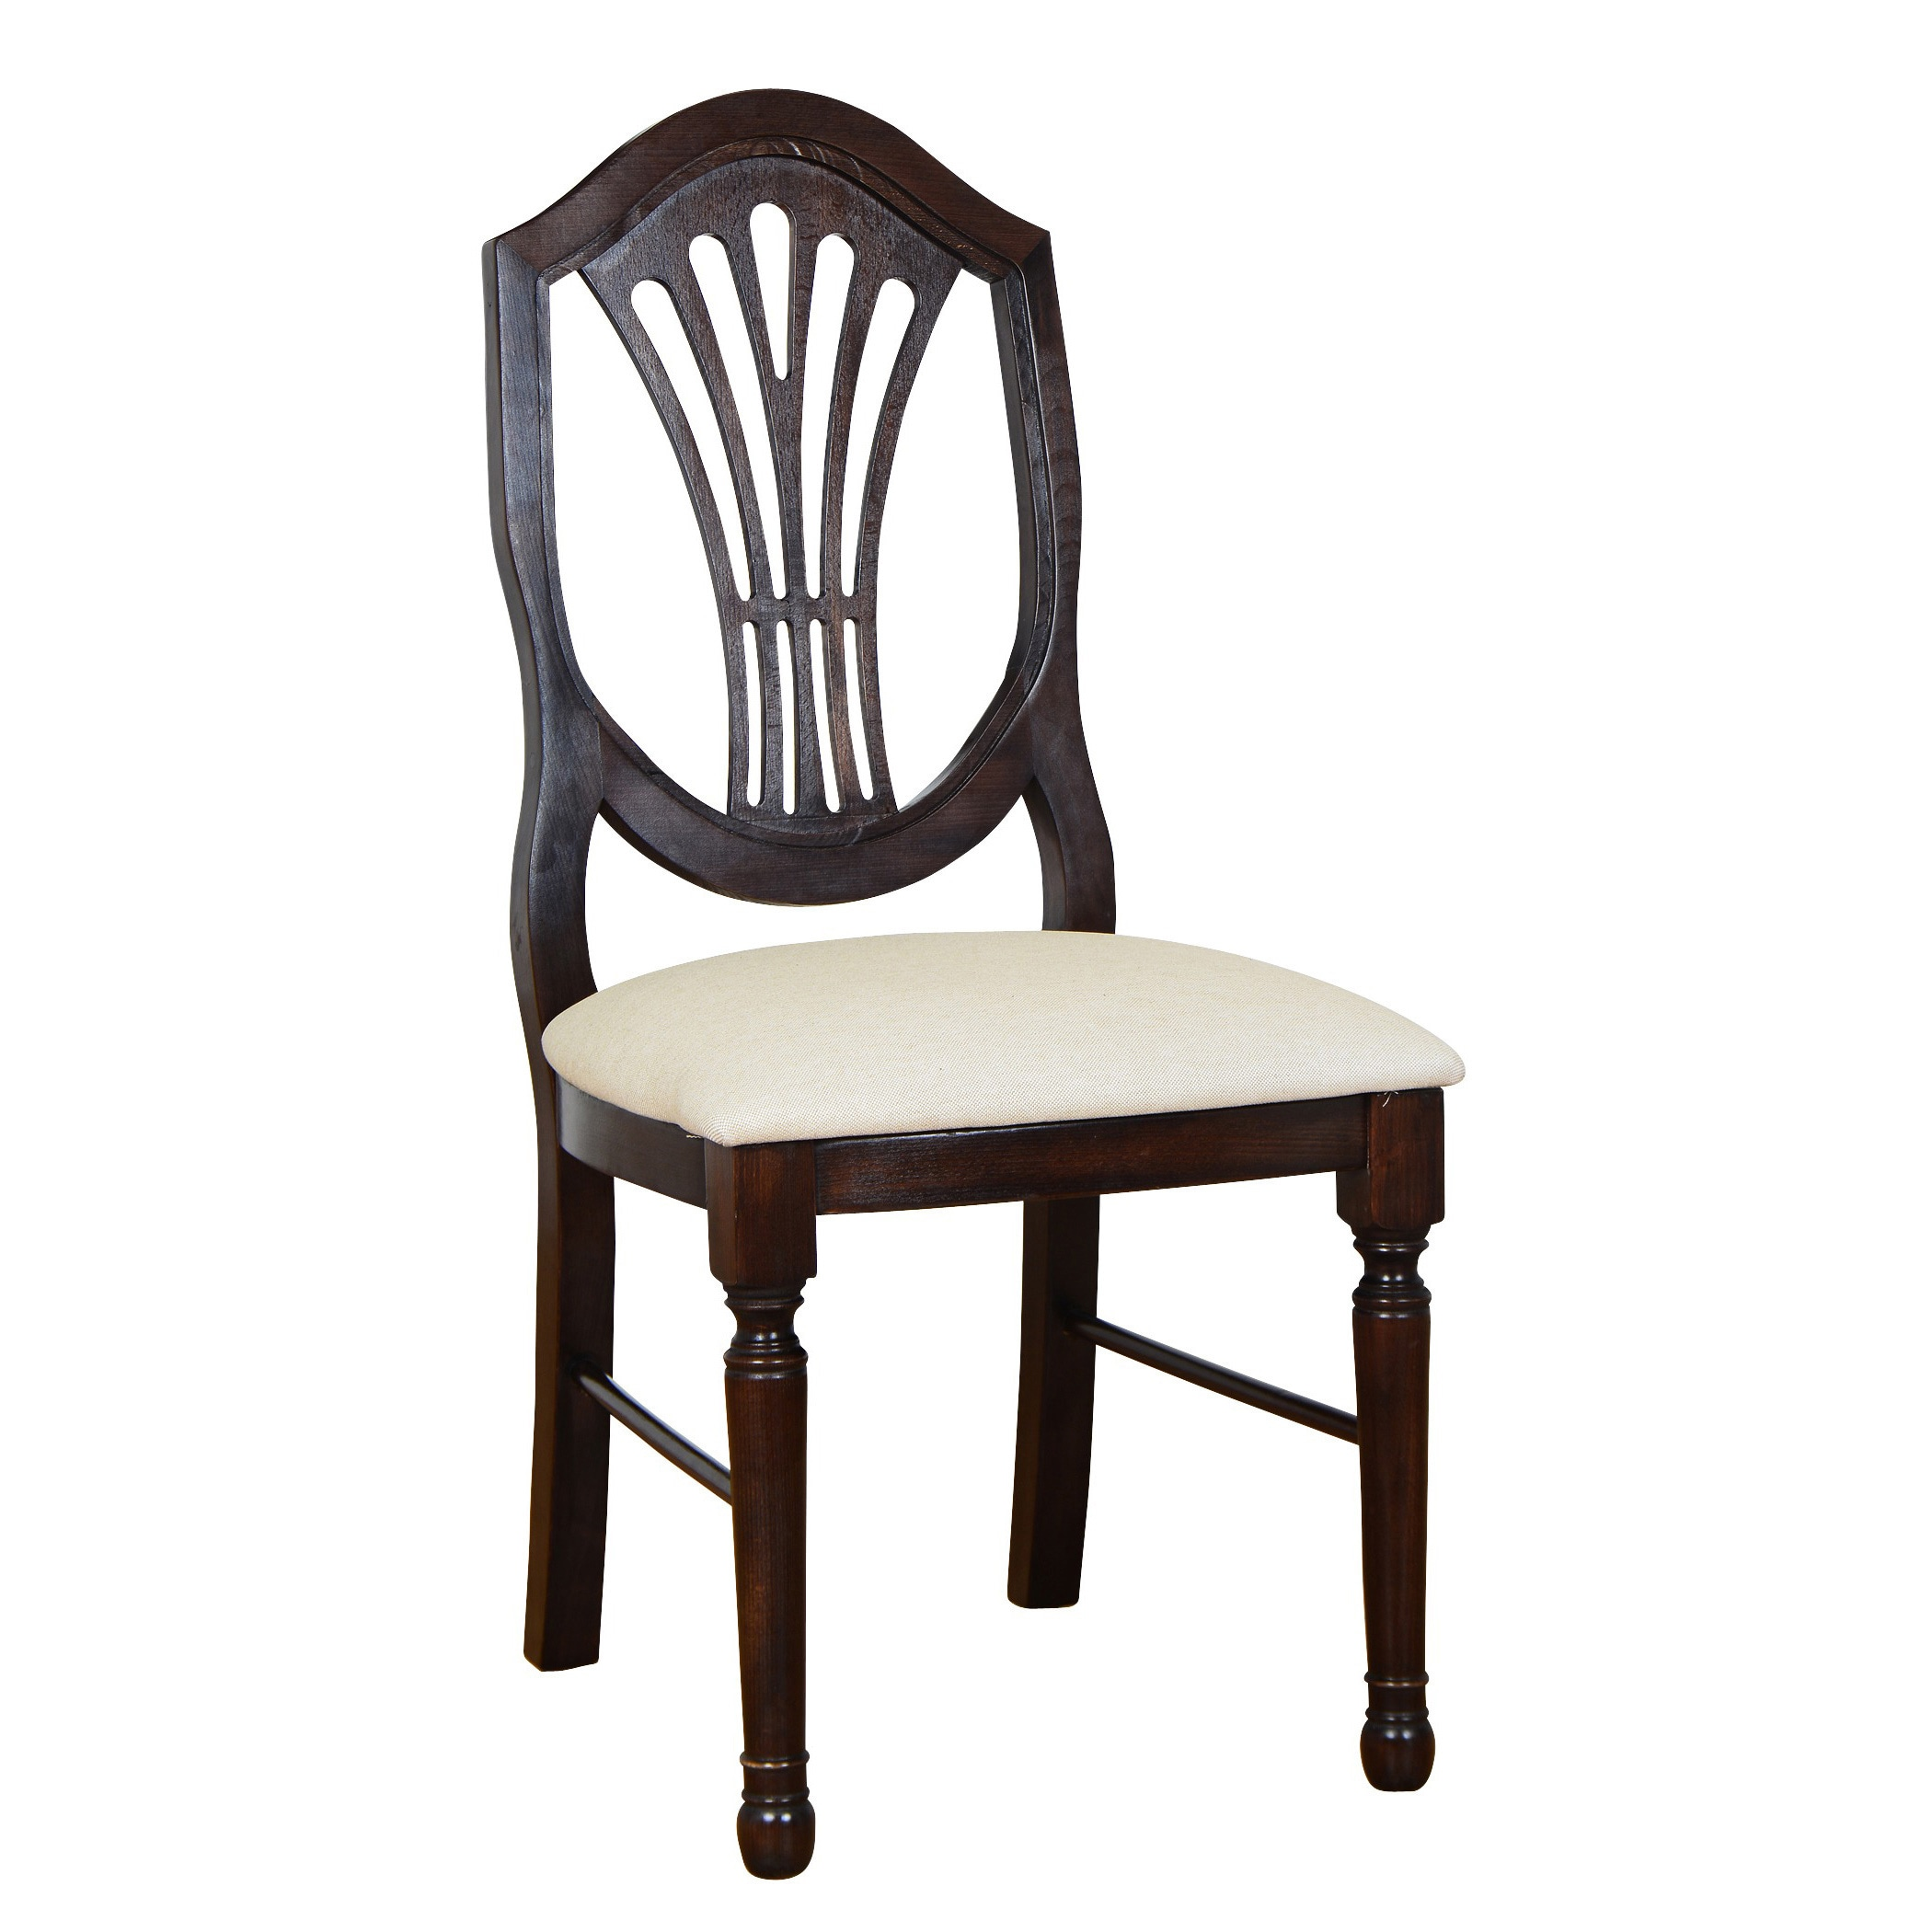 Shop Buckingham Dining Chair - On Sale - Free Shipping Today - Overstock.com - 10910426  sc 1 st  Overstock.com & Shop Buckingham Dining Chair - On Sale - Free Shipping Today ...